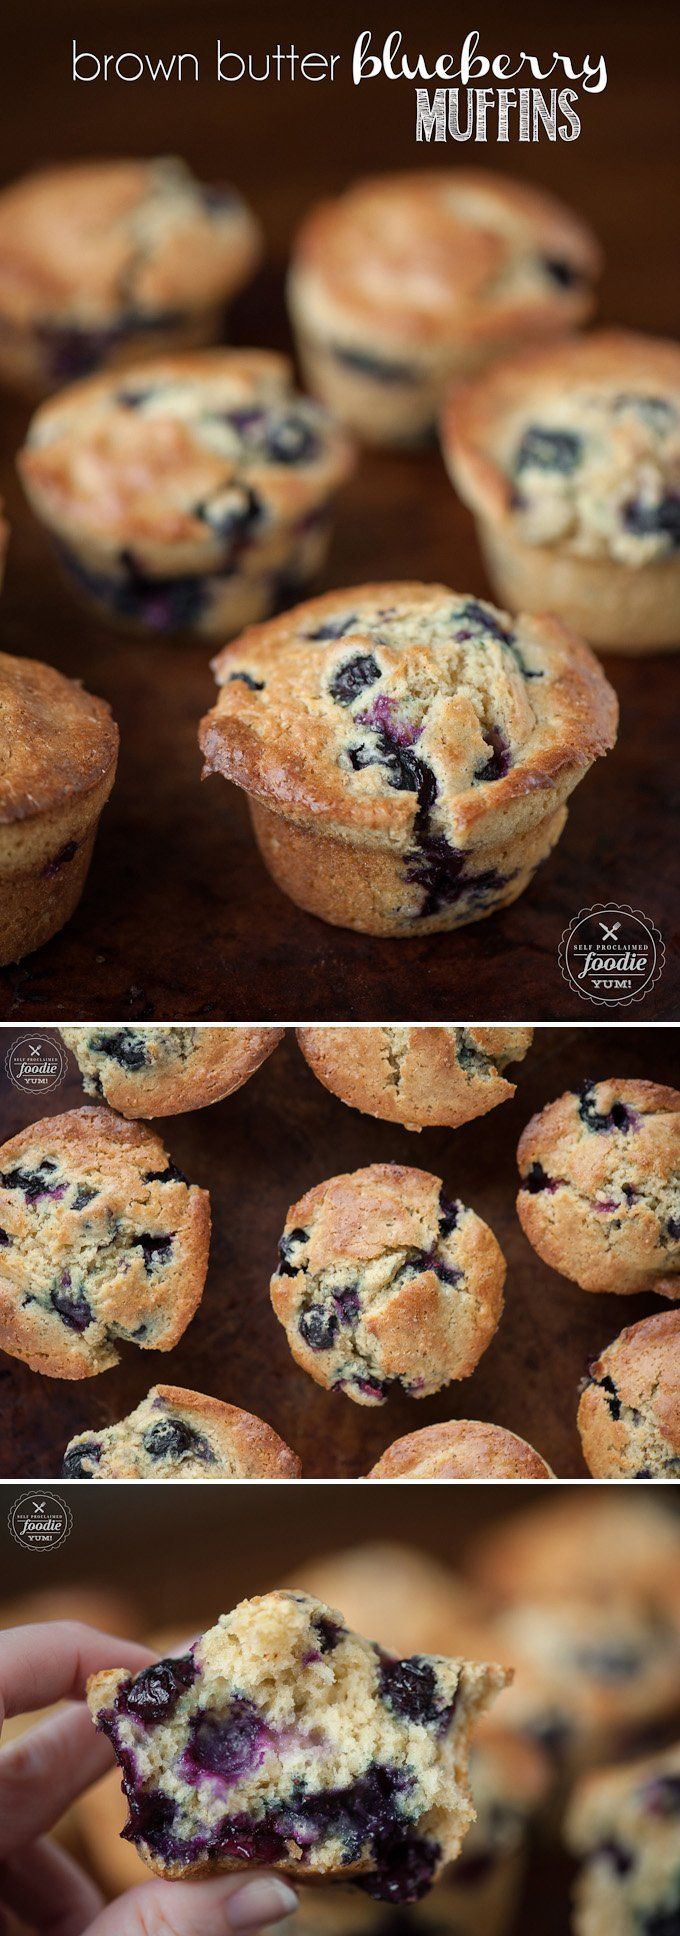 These buttermilk Brown Butter Blueberry Muffins rise beautifully & finish with a nice crispy top. They're perfect for brunch or a breakfast treat on the go.